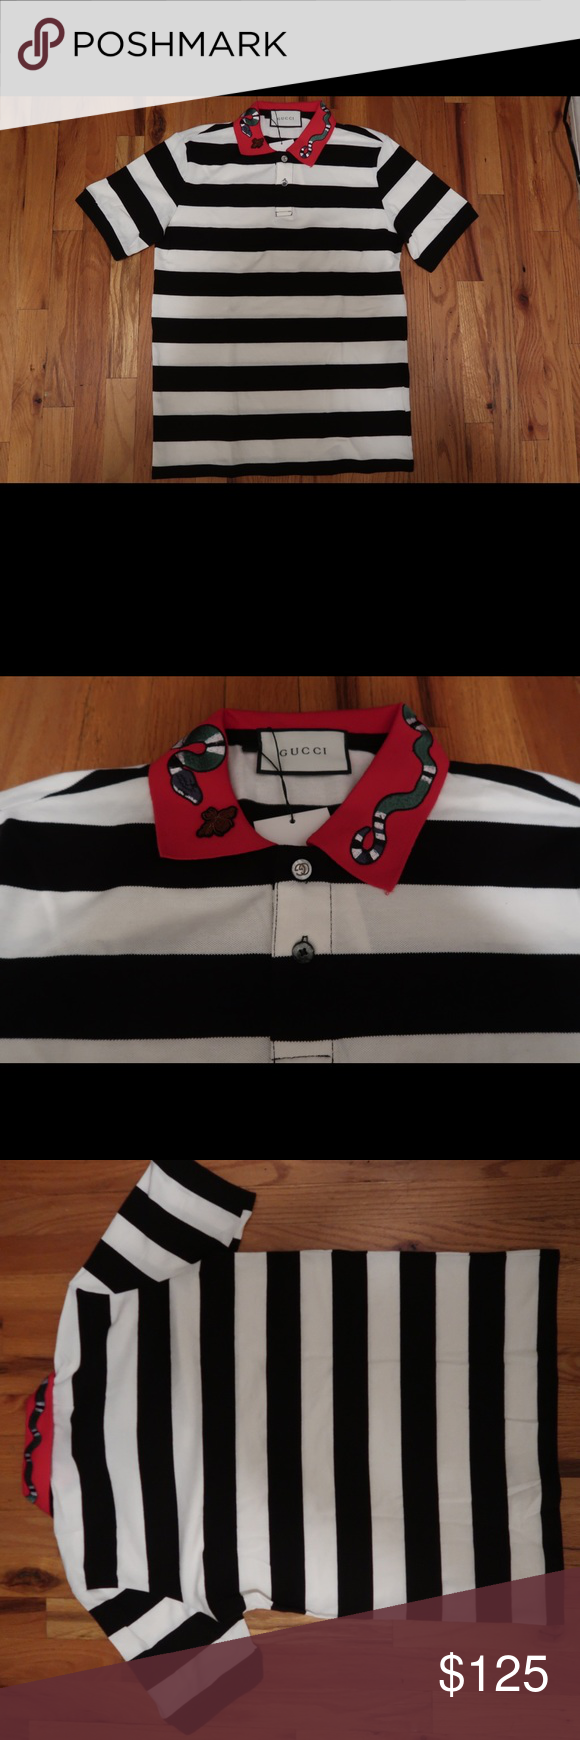 85be4f27f Gucci Kingsnake Embroidery Polo Size Large. New With Tags. Stripe Black  White Red Collar Shirts Polos